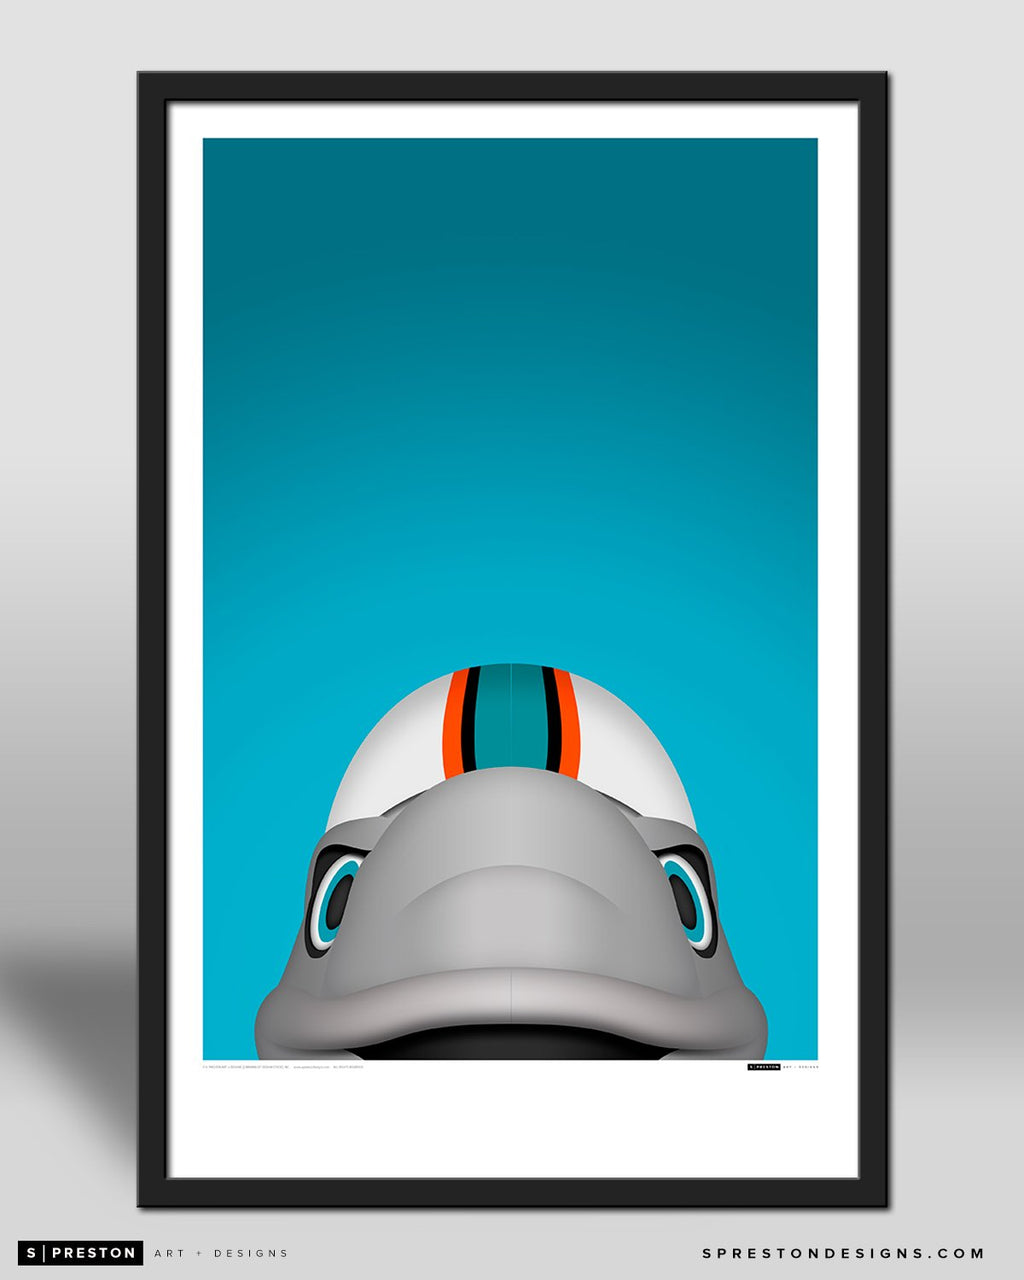 Minimalist T.D. by S. Preston - official mascot of the Miami Dolphins